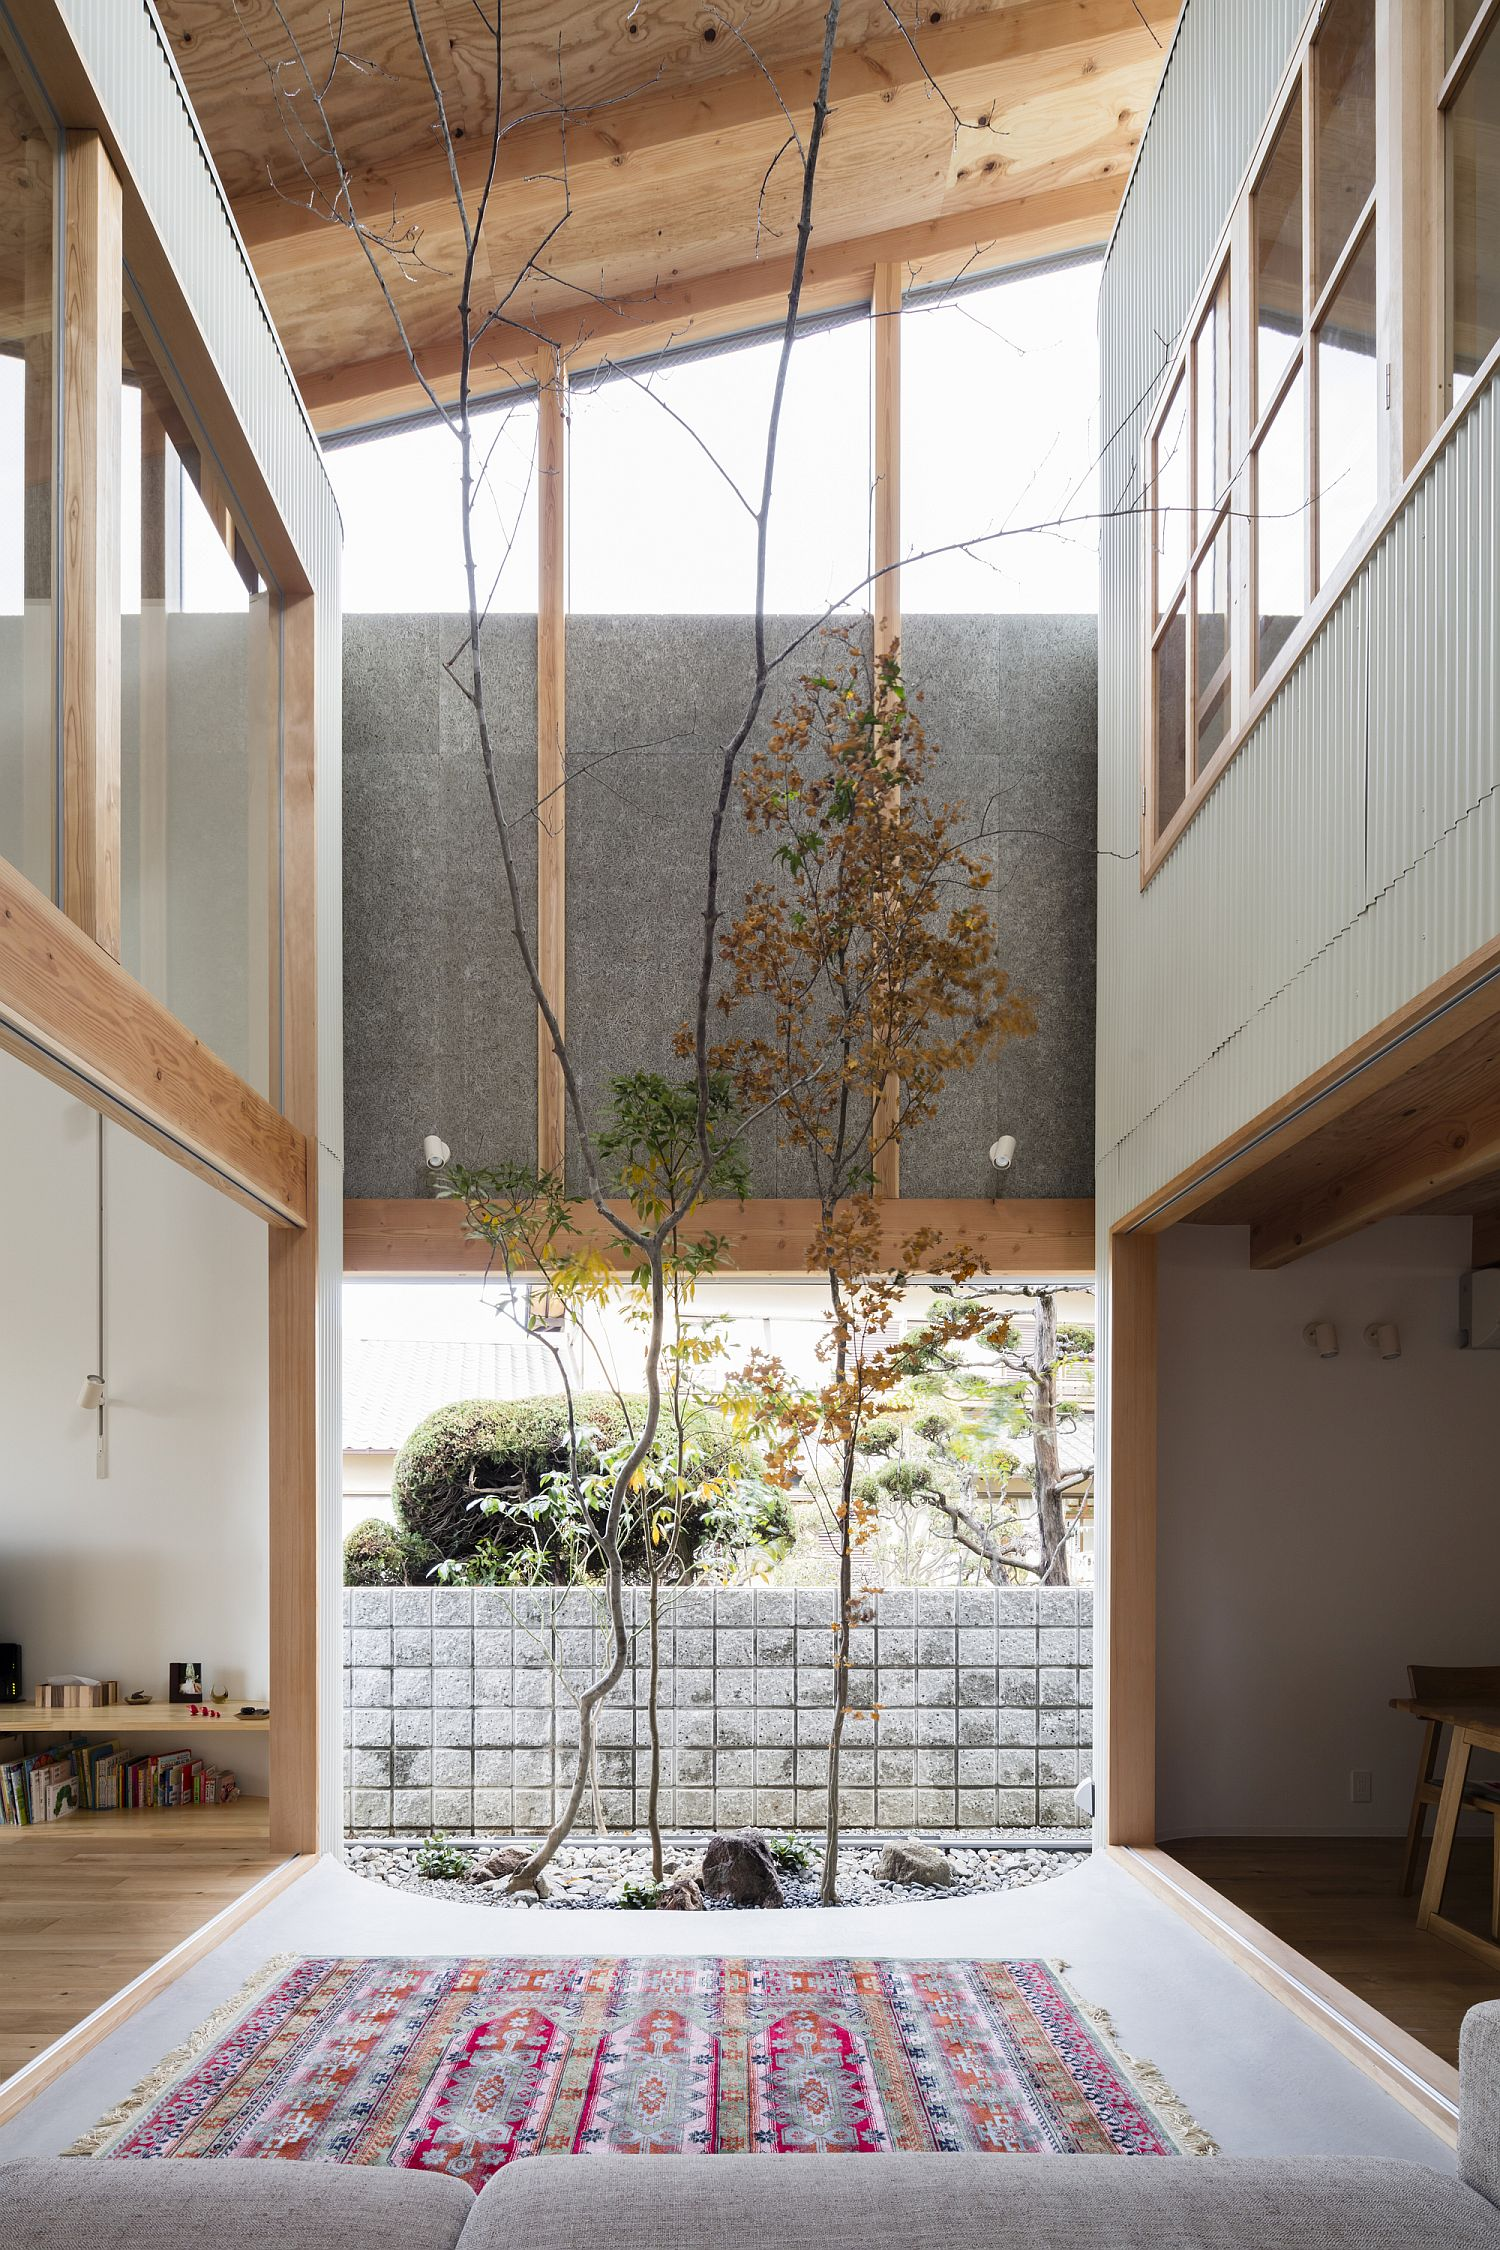 Placing the green area indoors gives the home a much greener, natural vibe